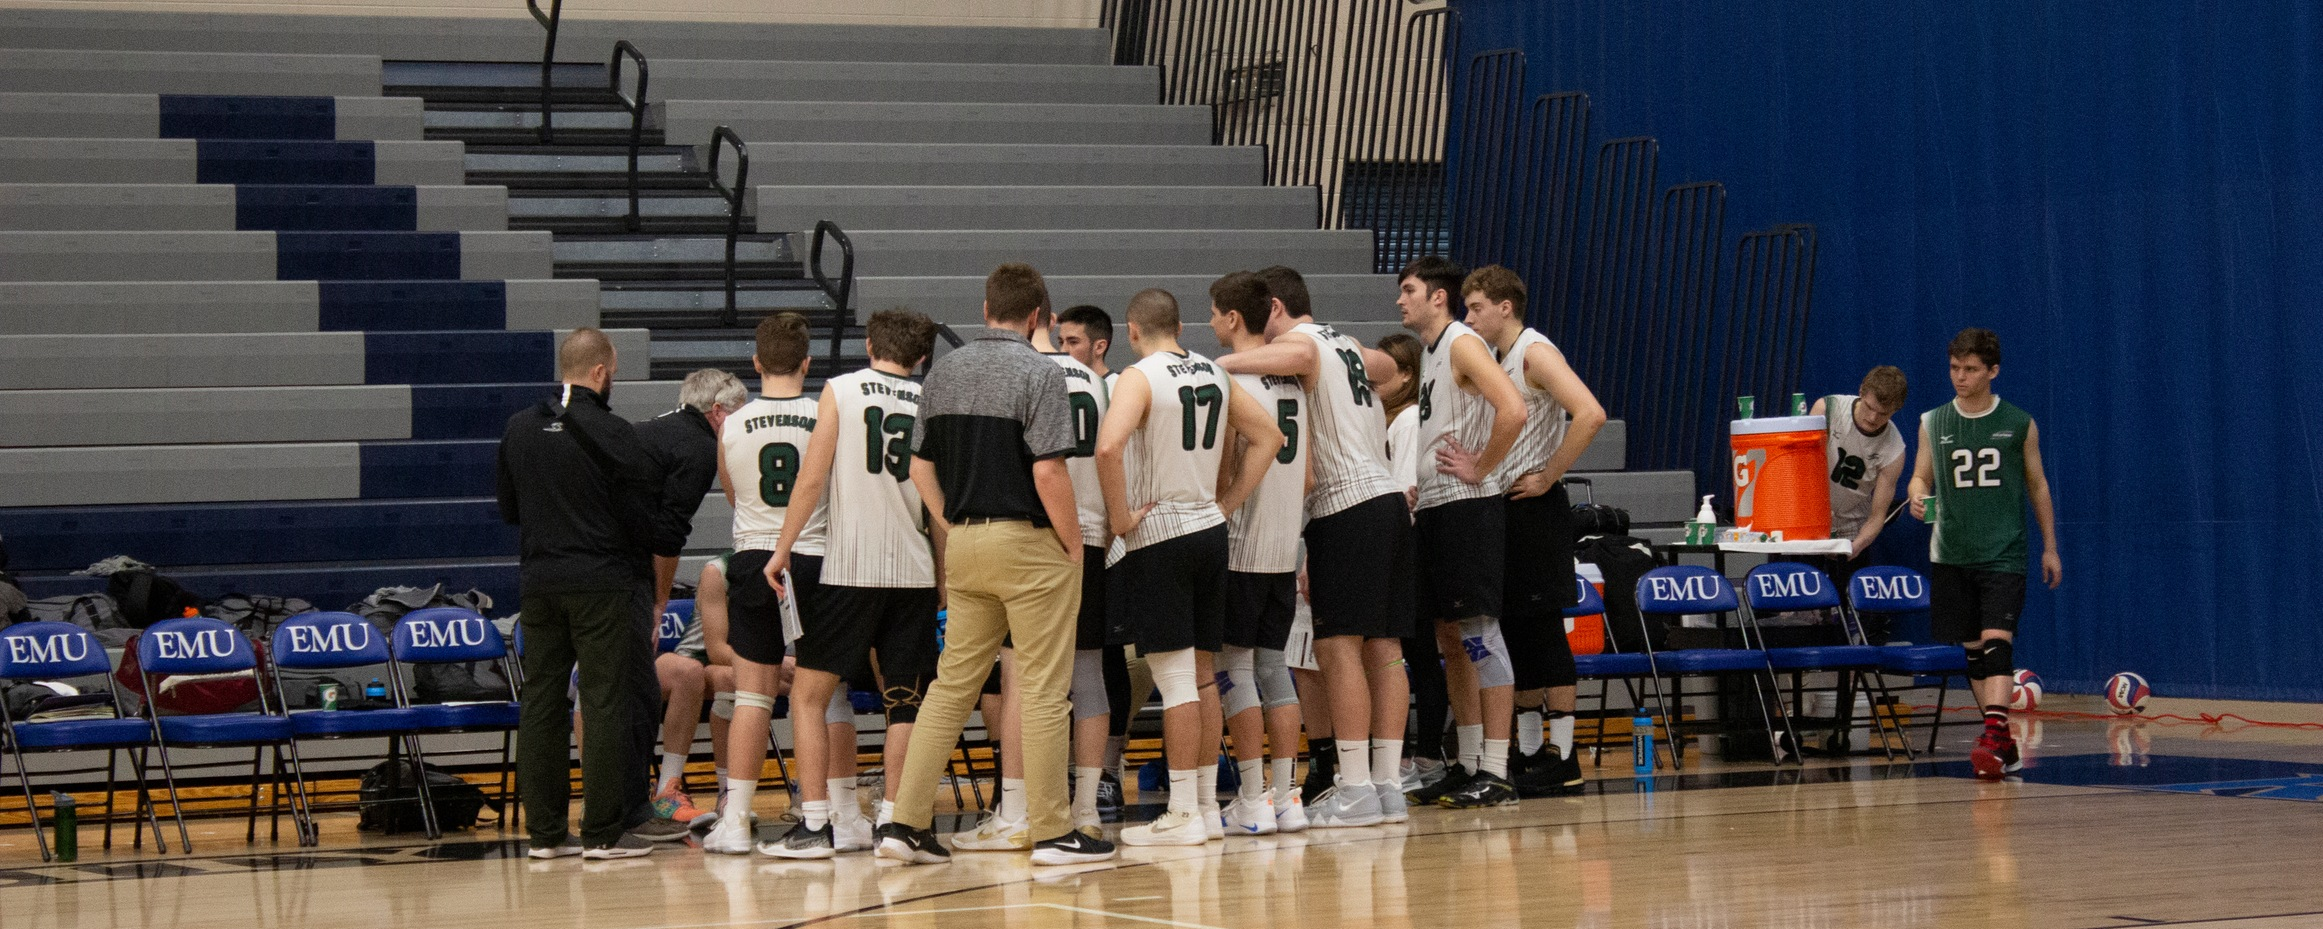 Men's Volleyball Slides Back A Spot To No. 6